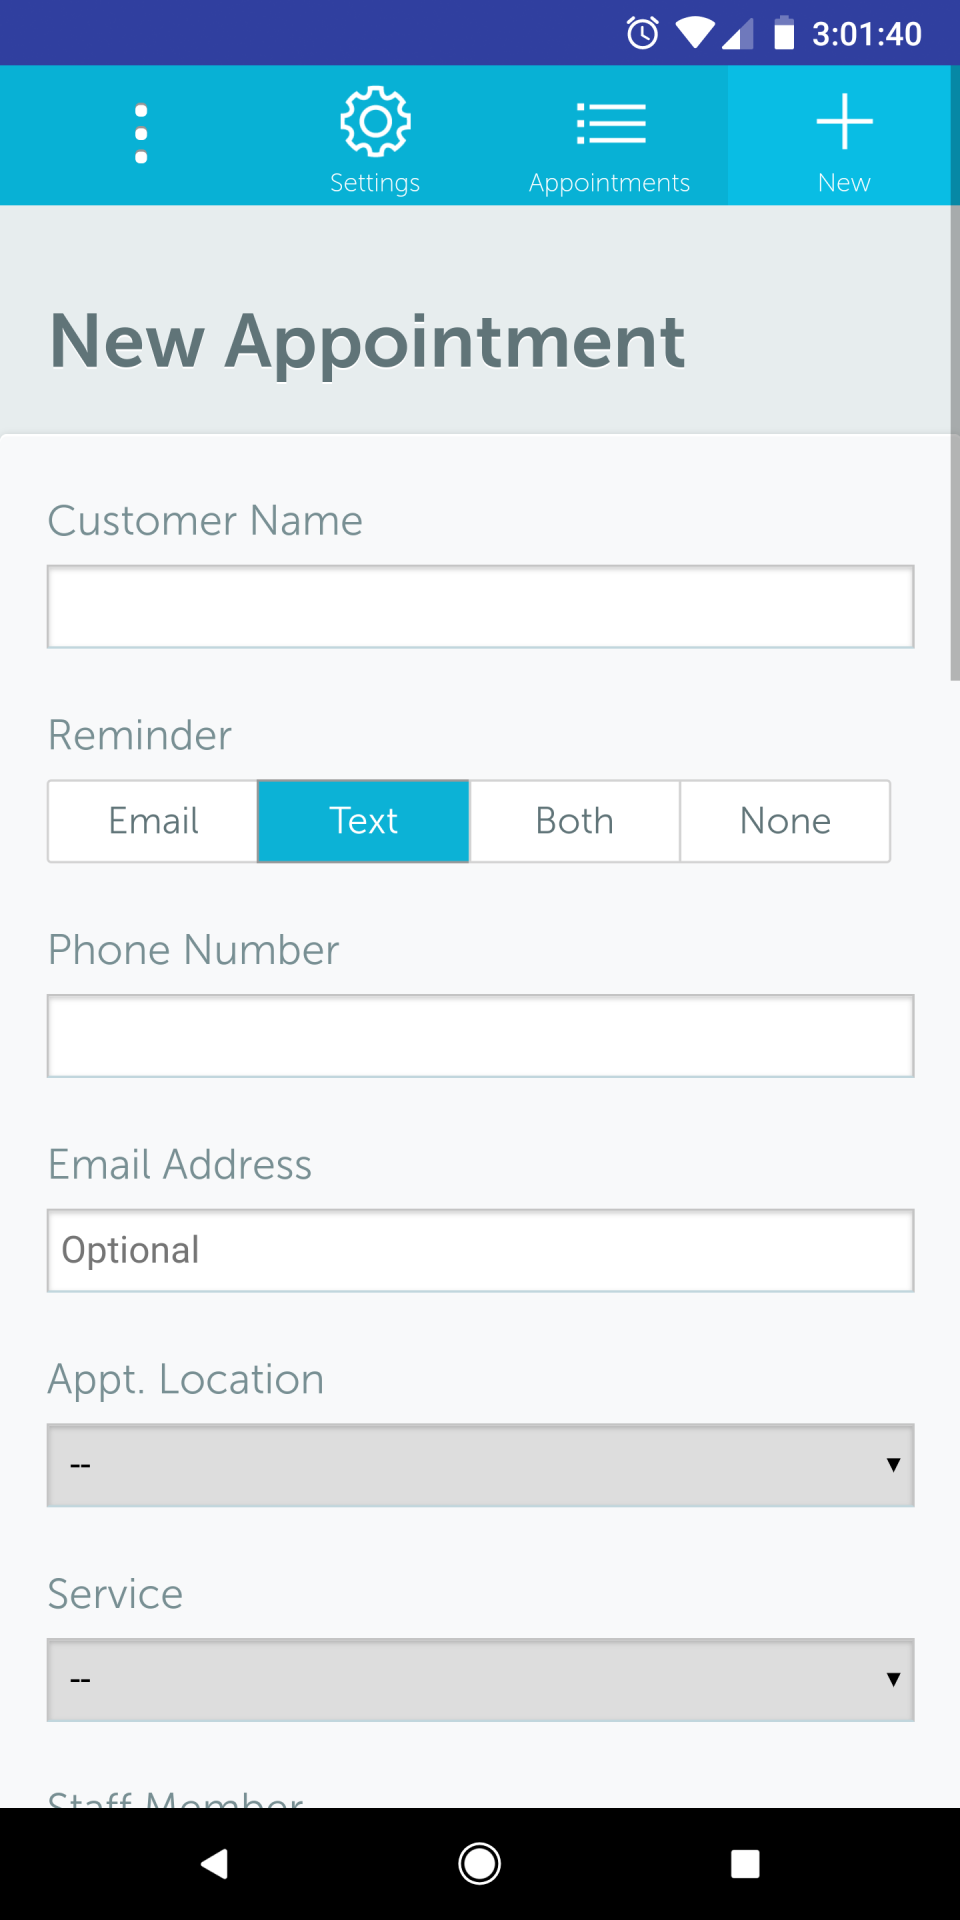 Appointment reminders can be setup to be sent via SMS or email, both, or none